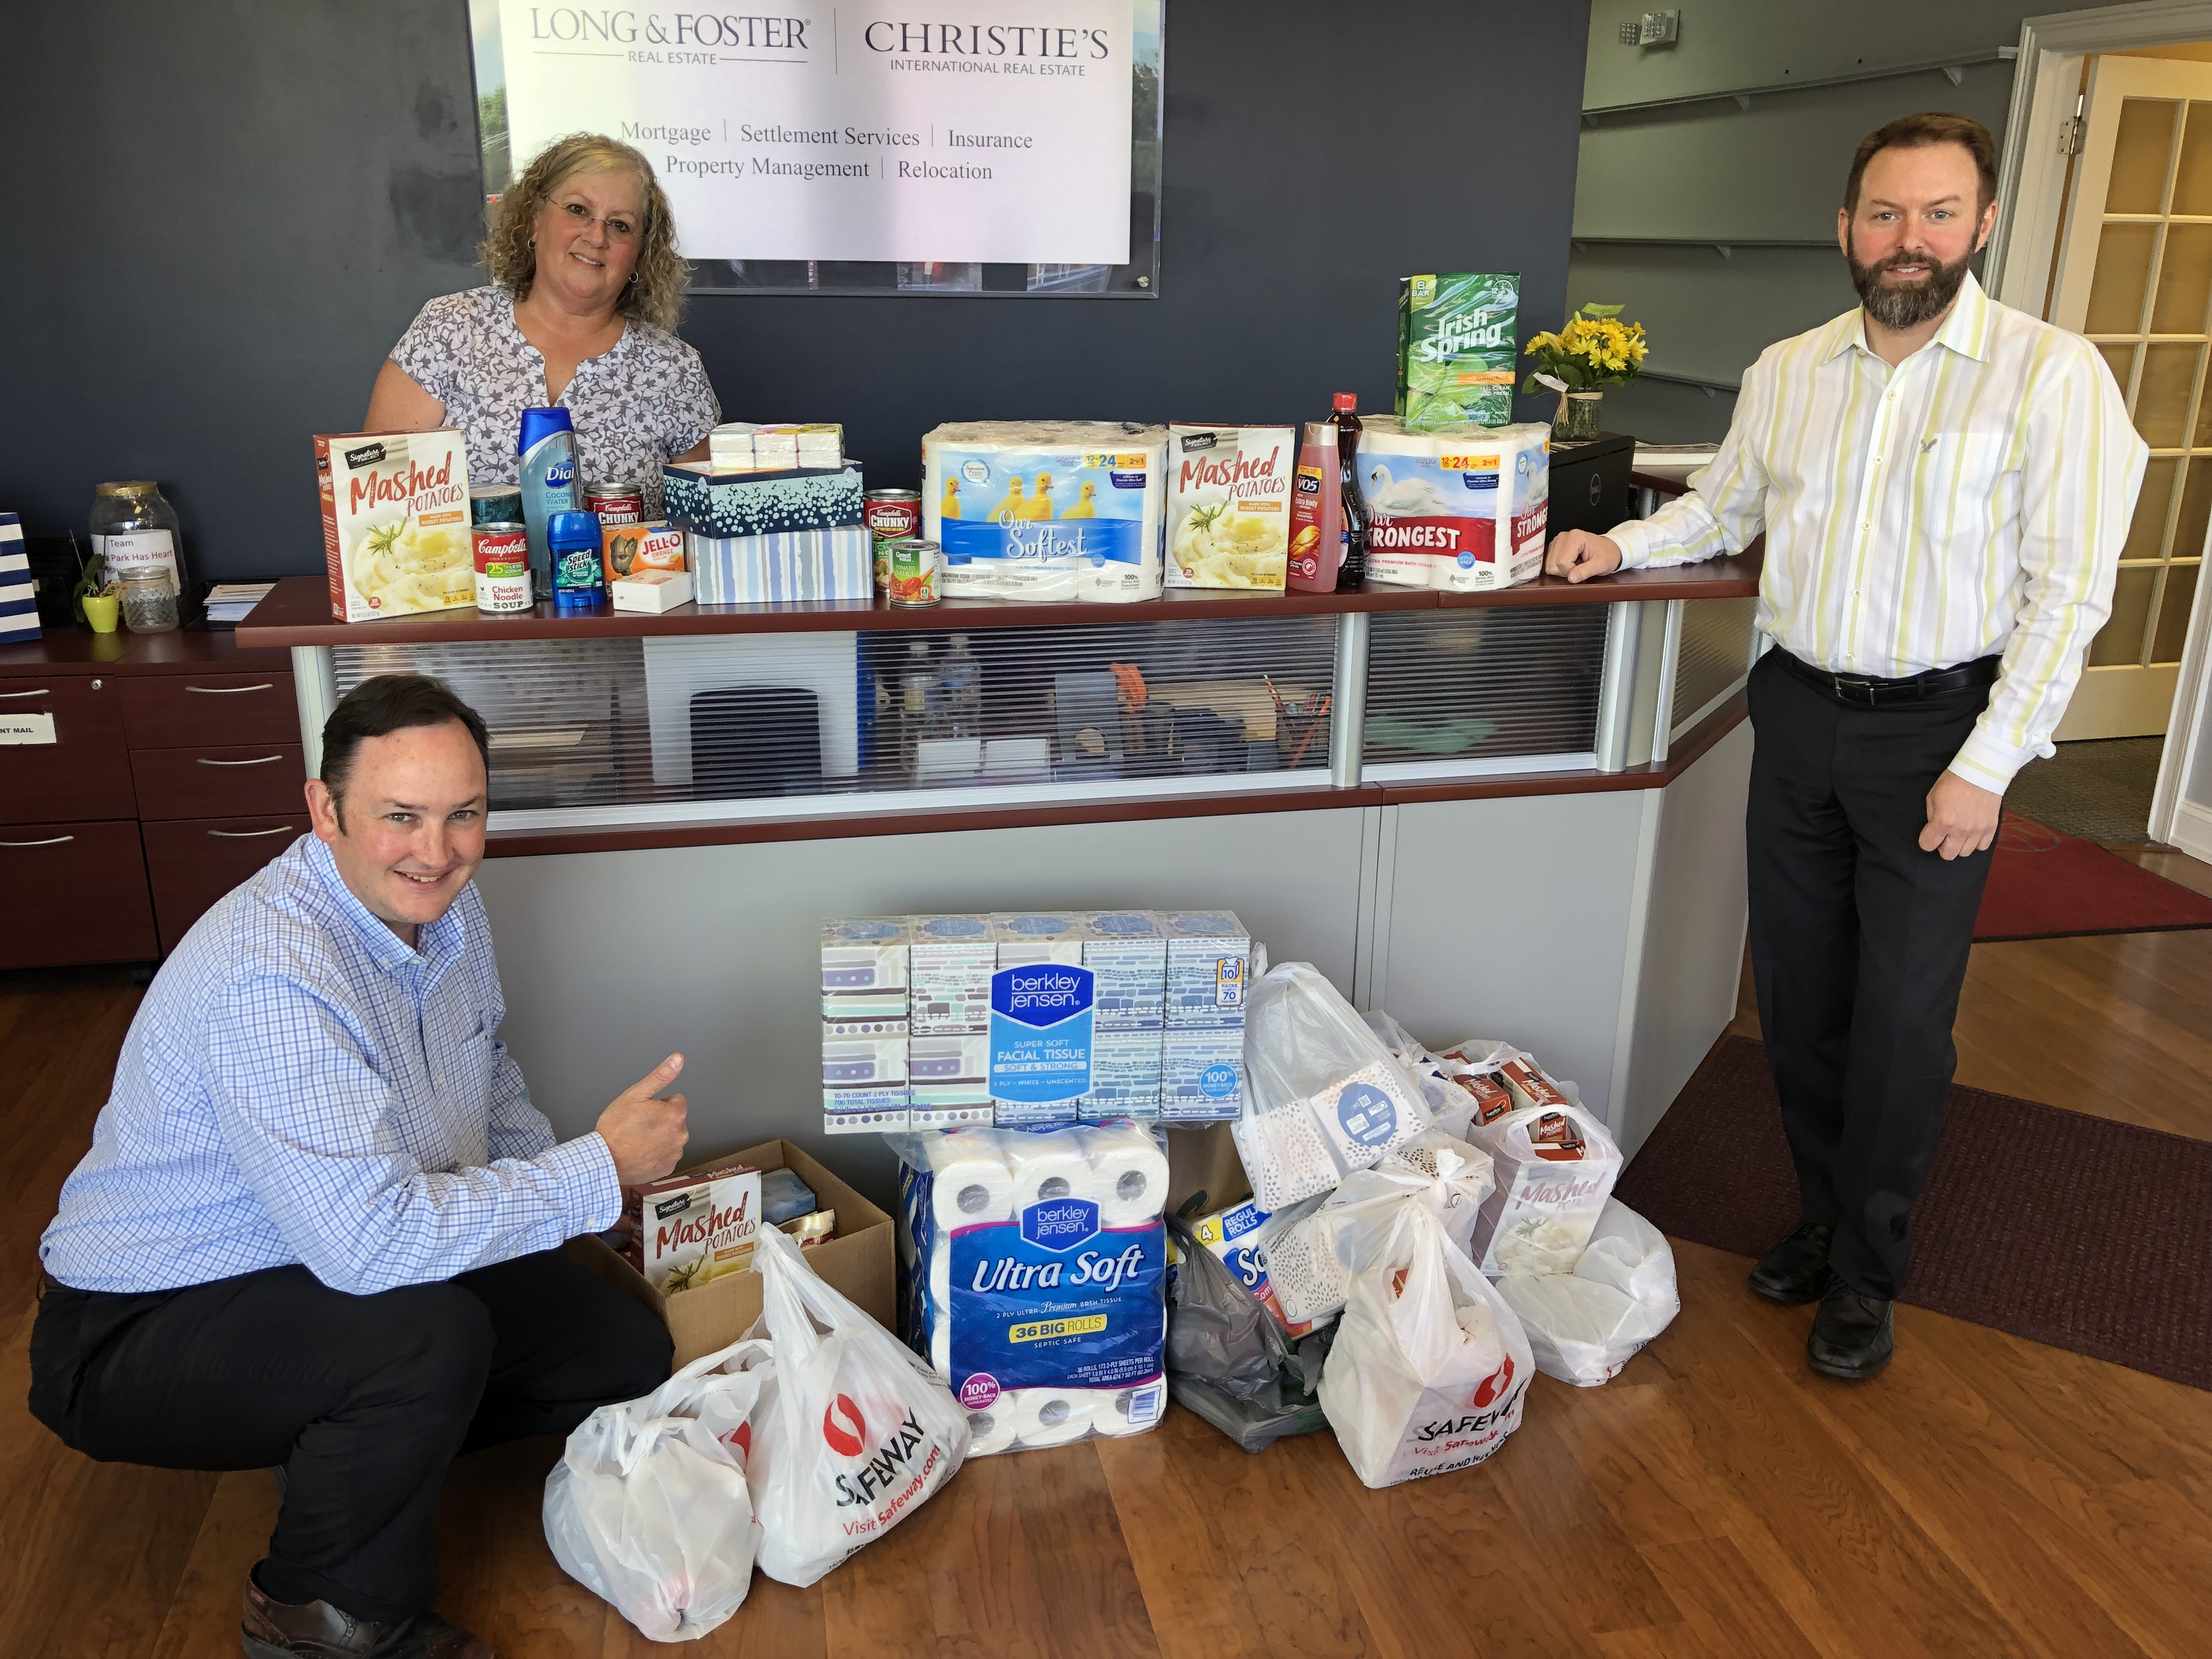 Agents in the Severna Park office participate in Community Service Day